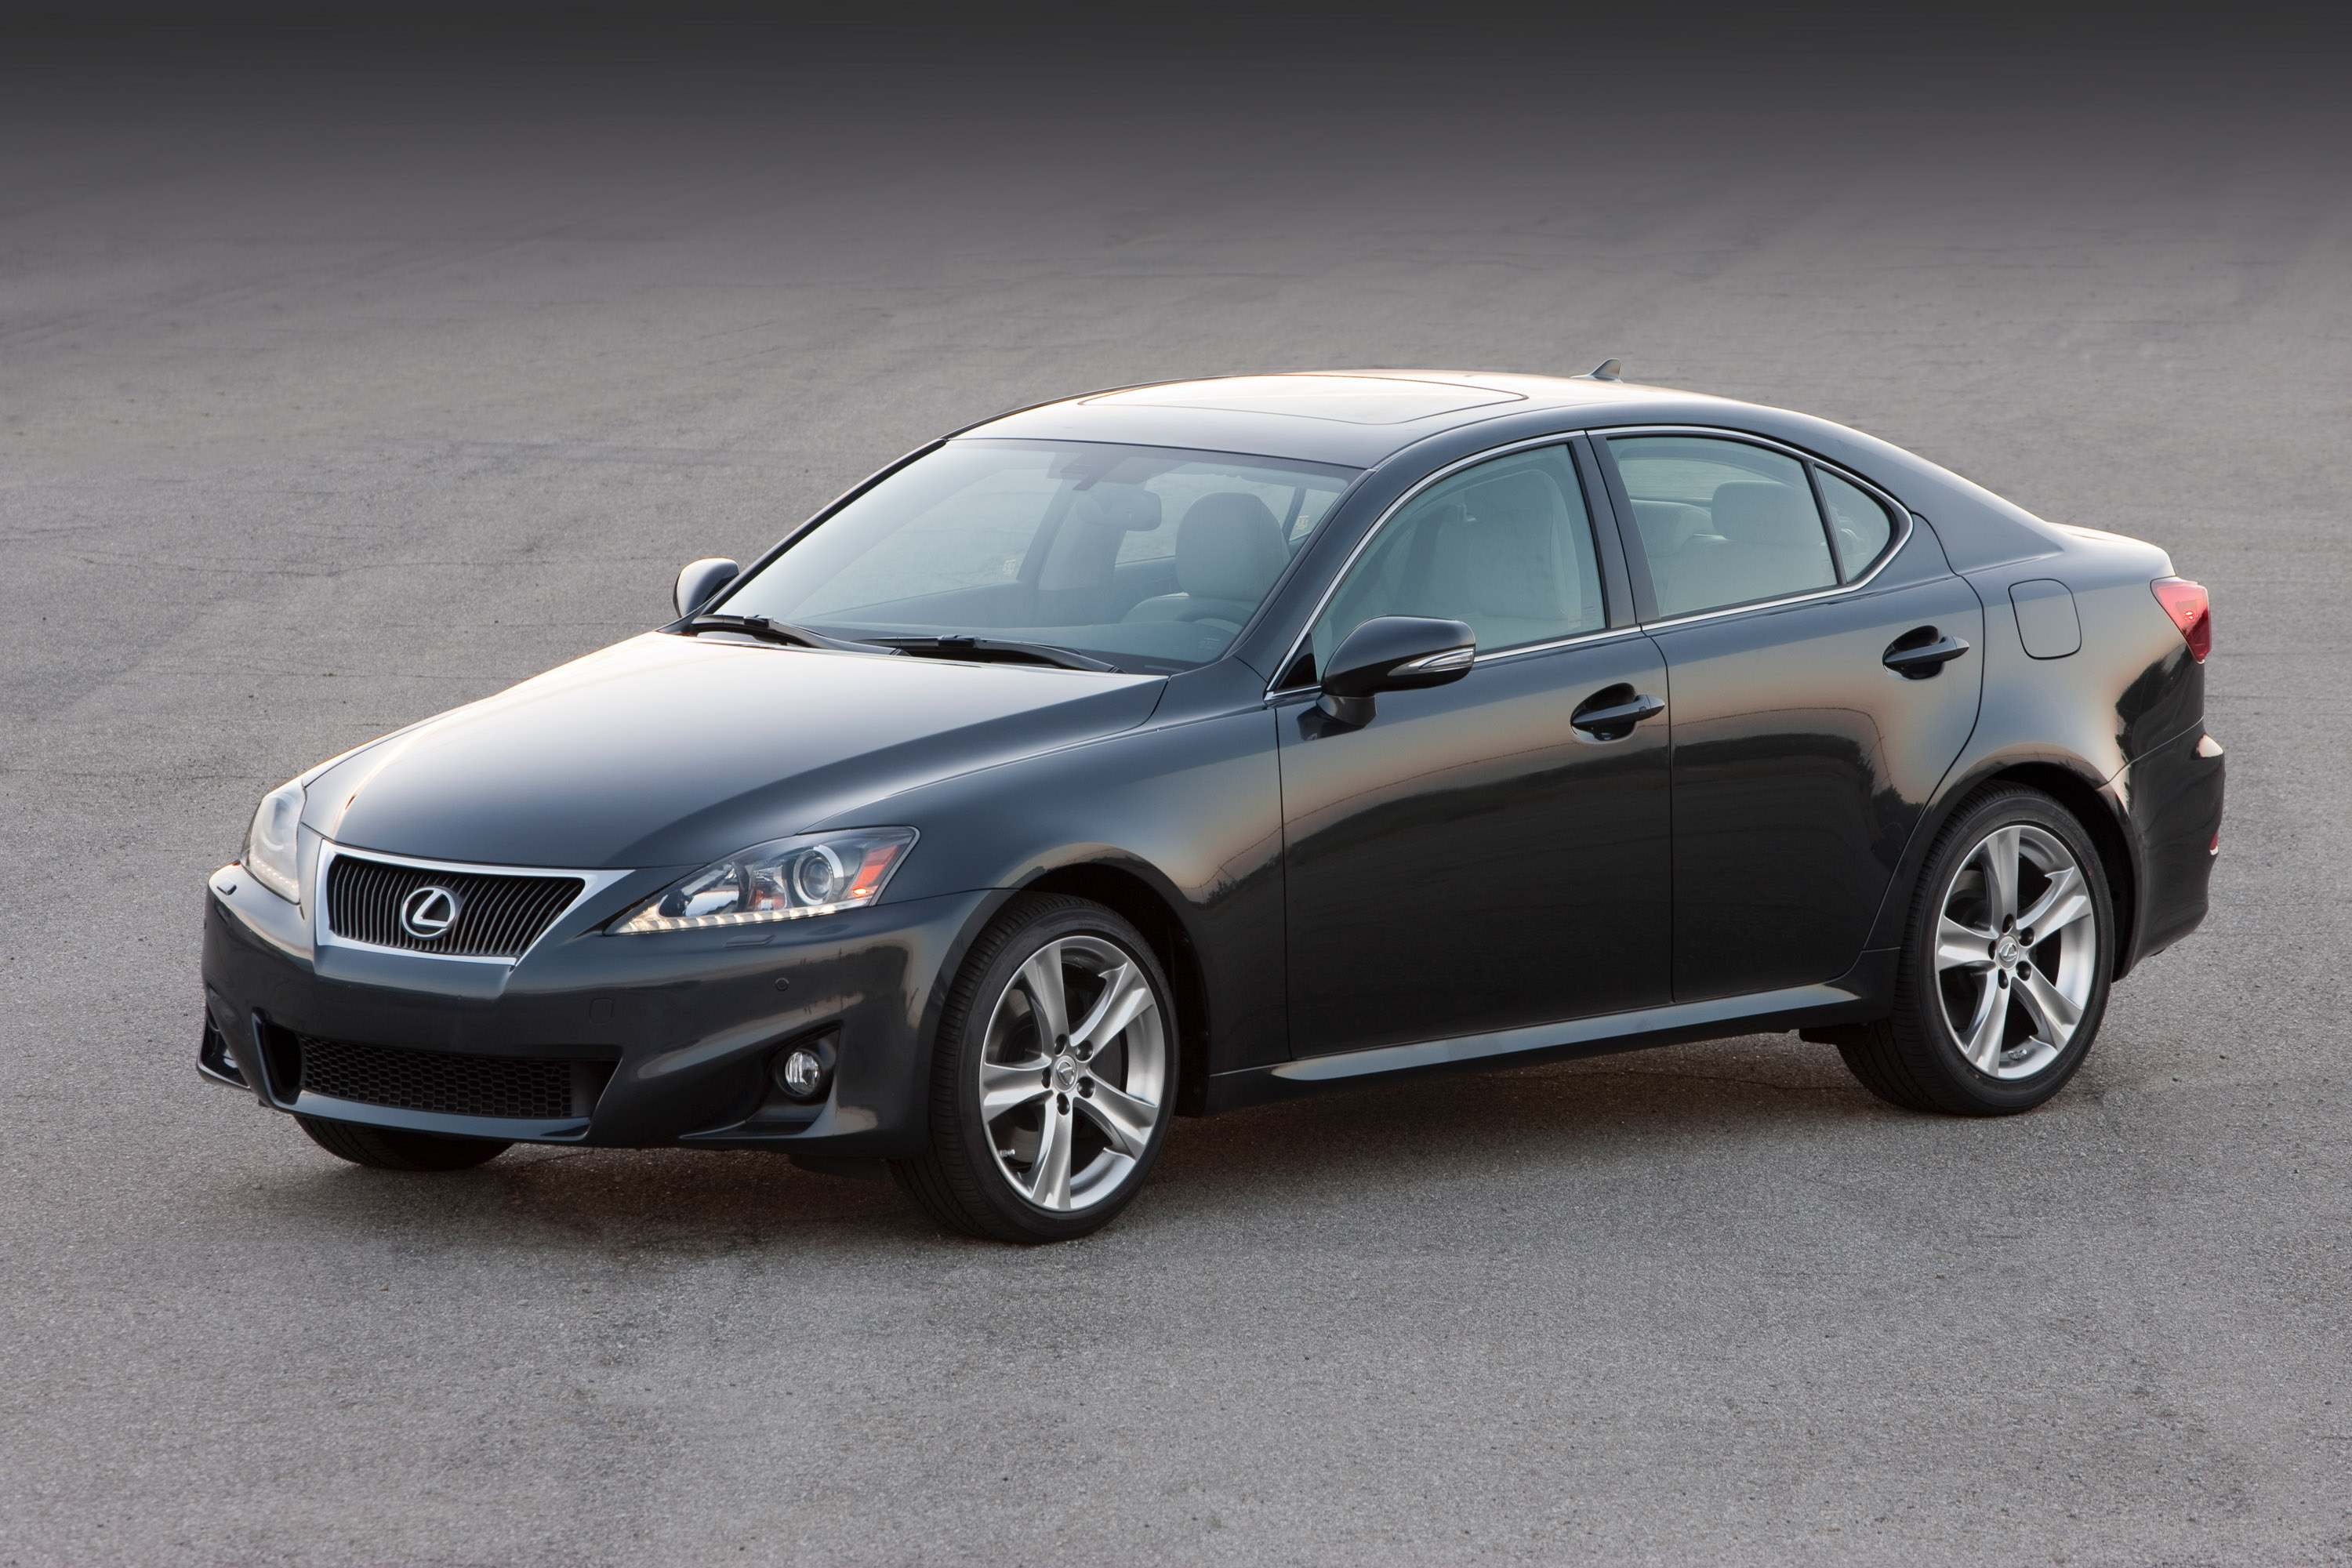 Lexus IS 350: For the Endowed   The Car Family